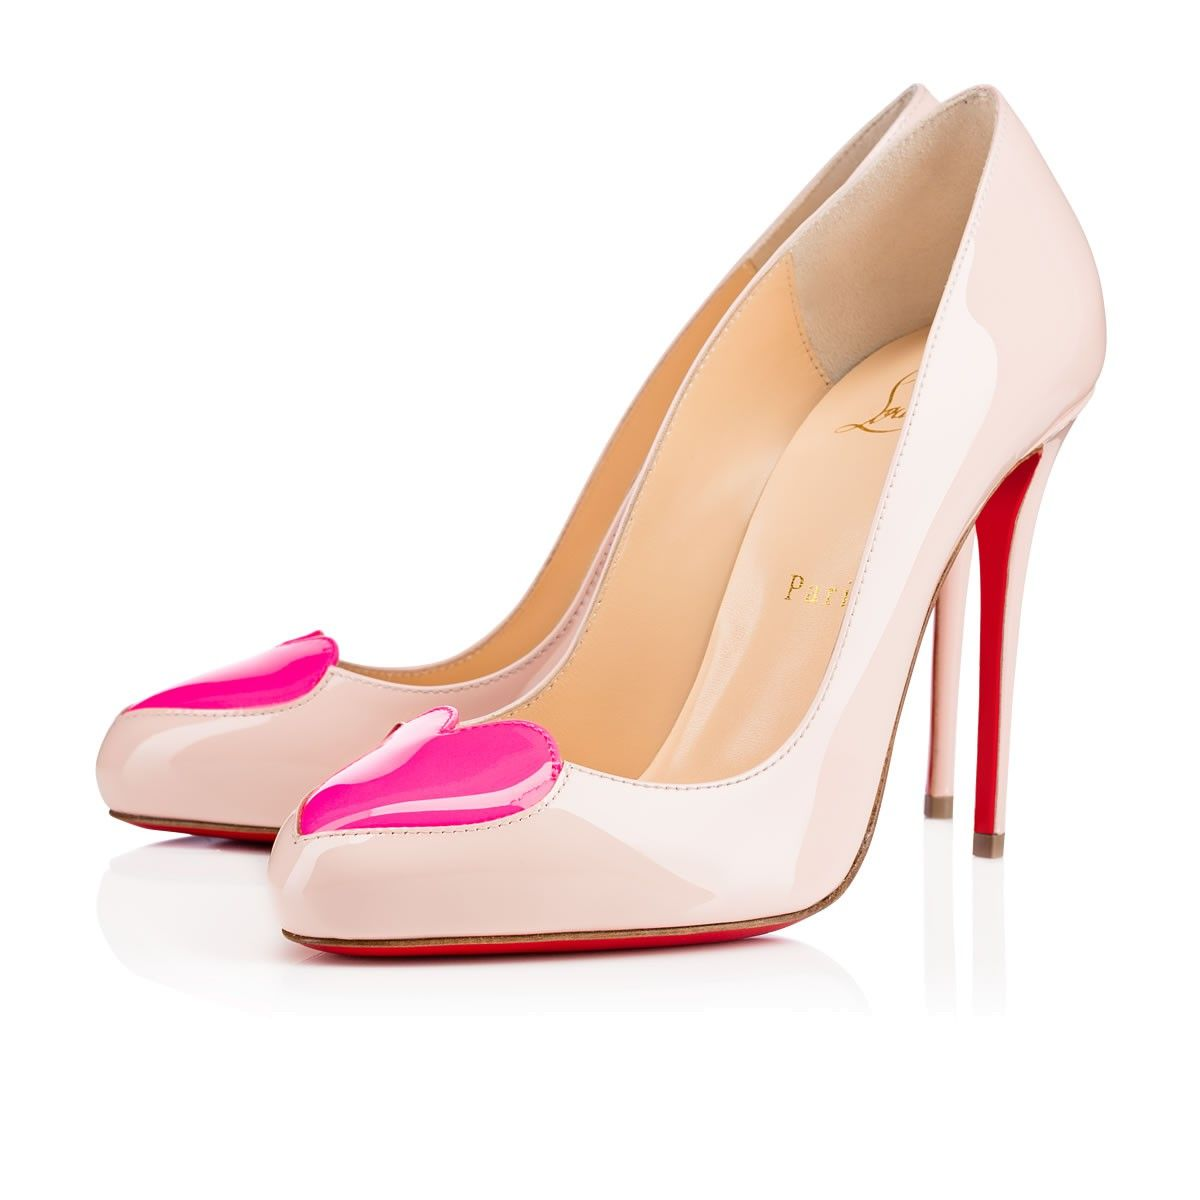 82a96efb2fb CHRISTIAN LOUBOUTIN Doracora 100Mm Ballerina Patent Leather.   christianlouboutin  shoes